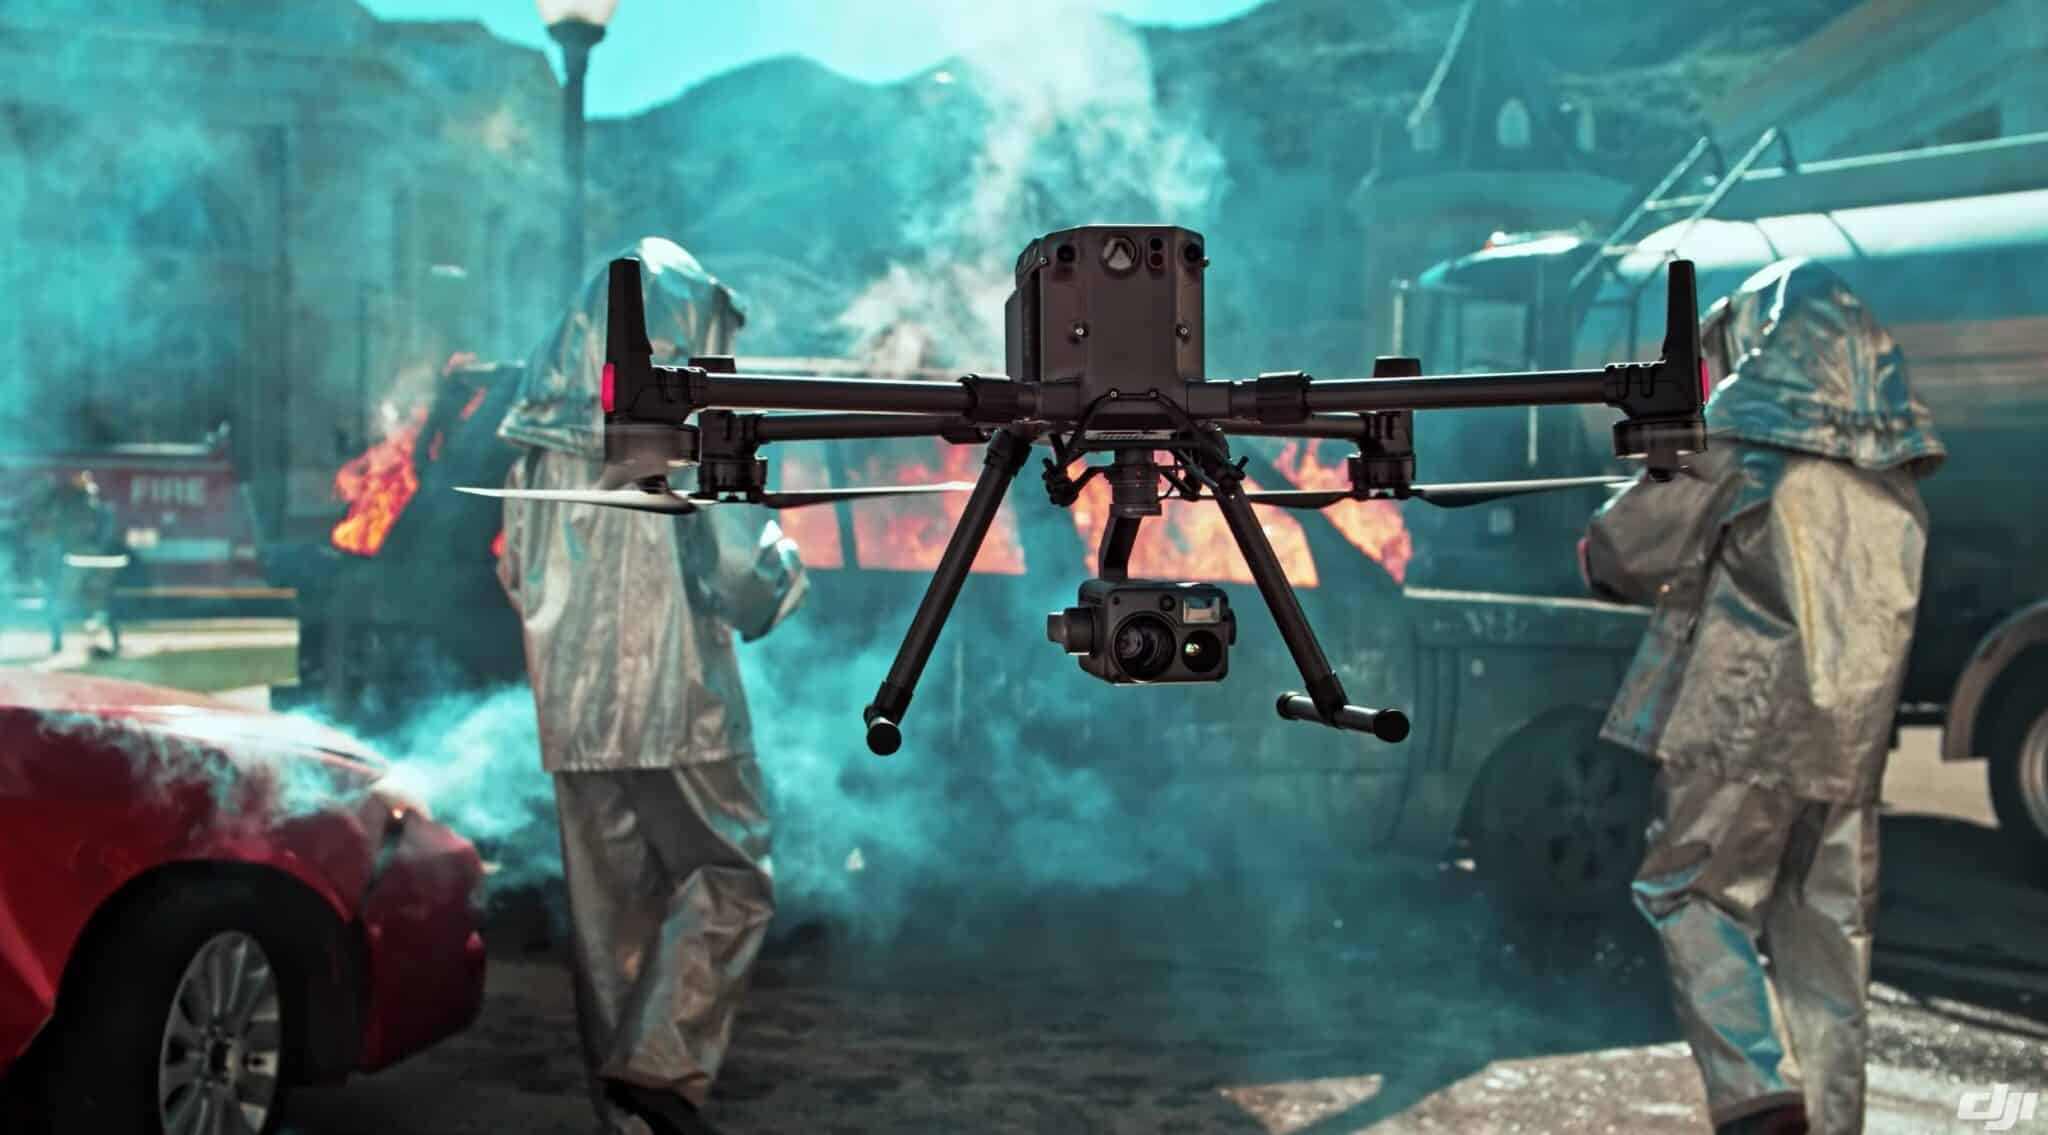 DJI releases Matrice 300 video ahead of official launch